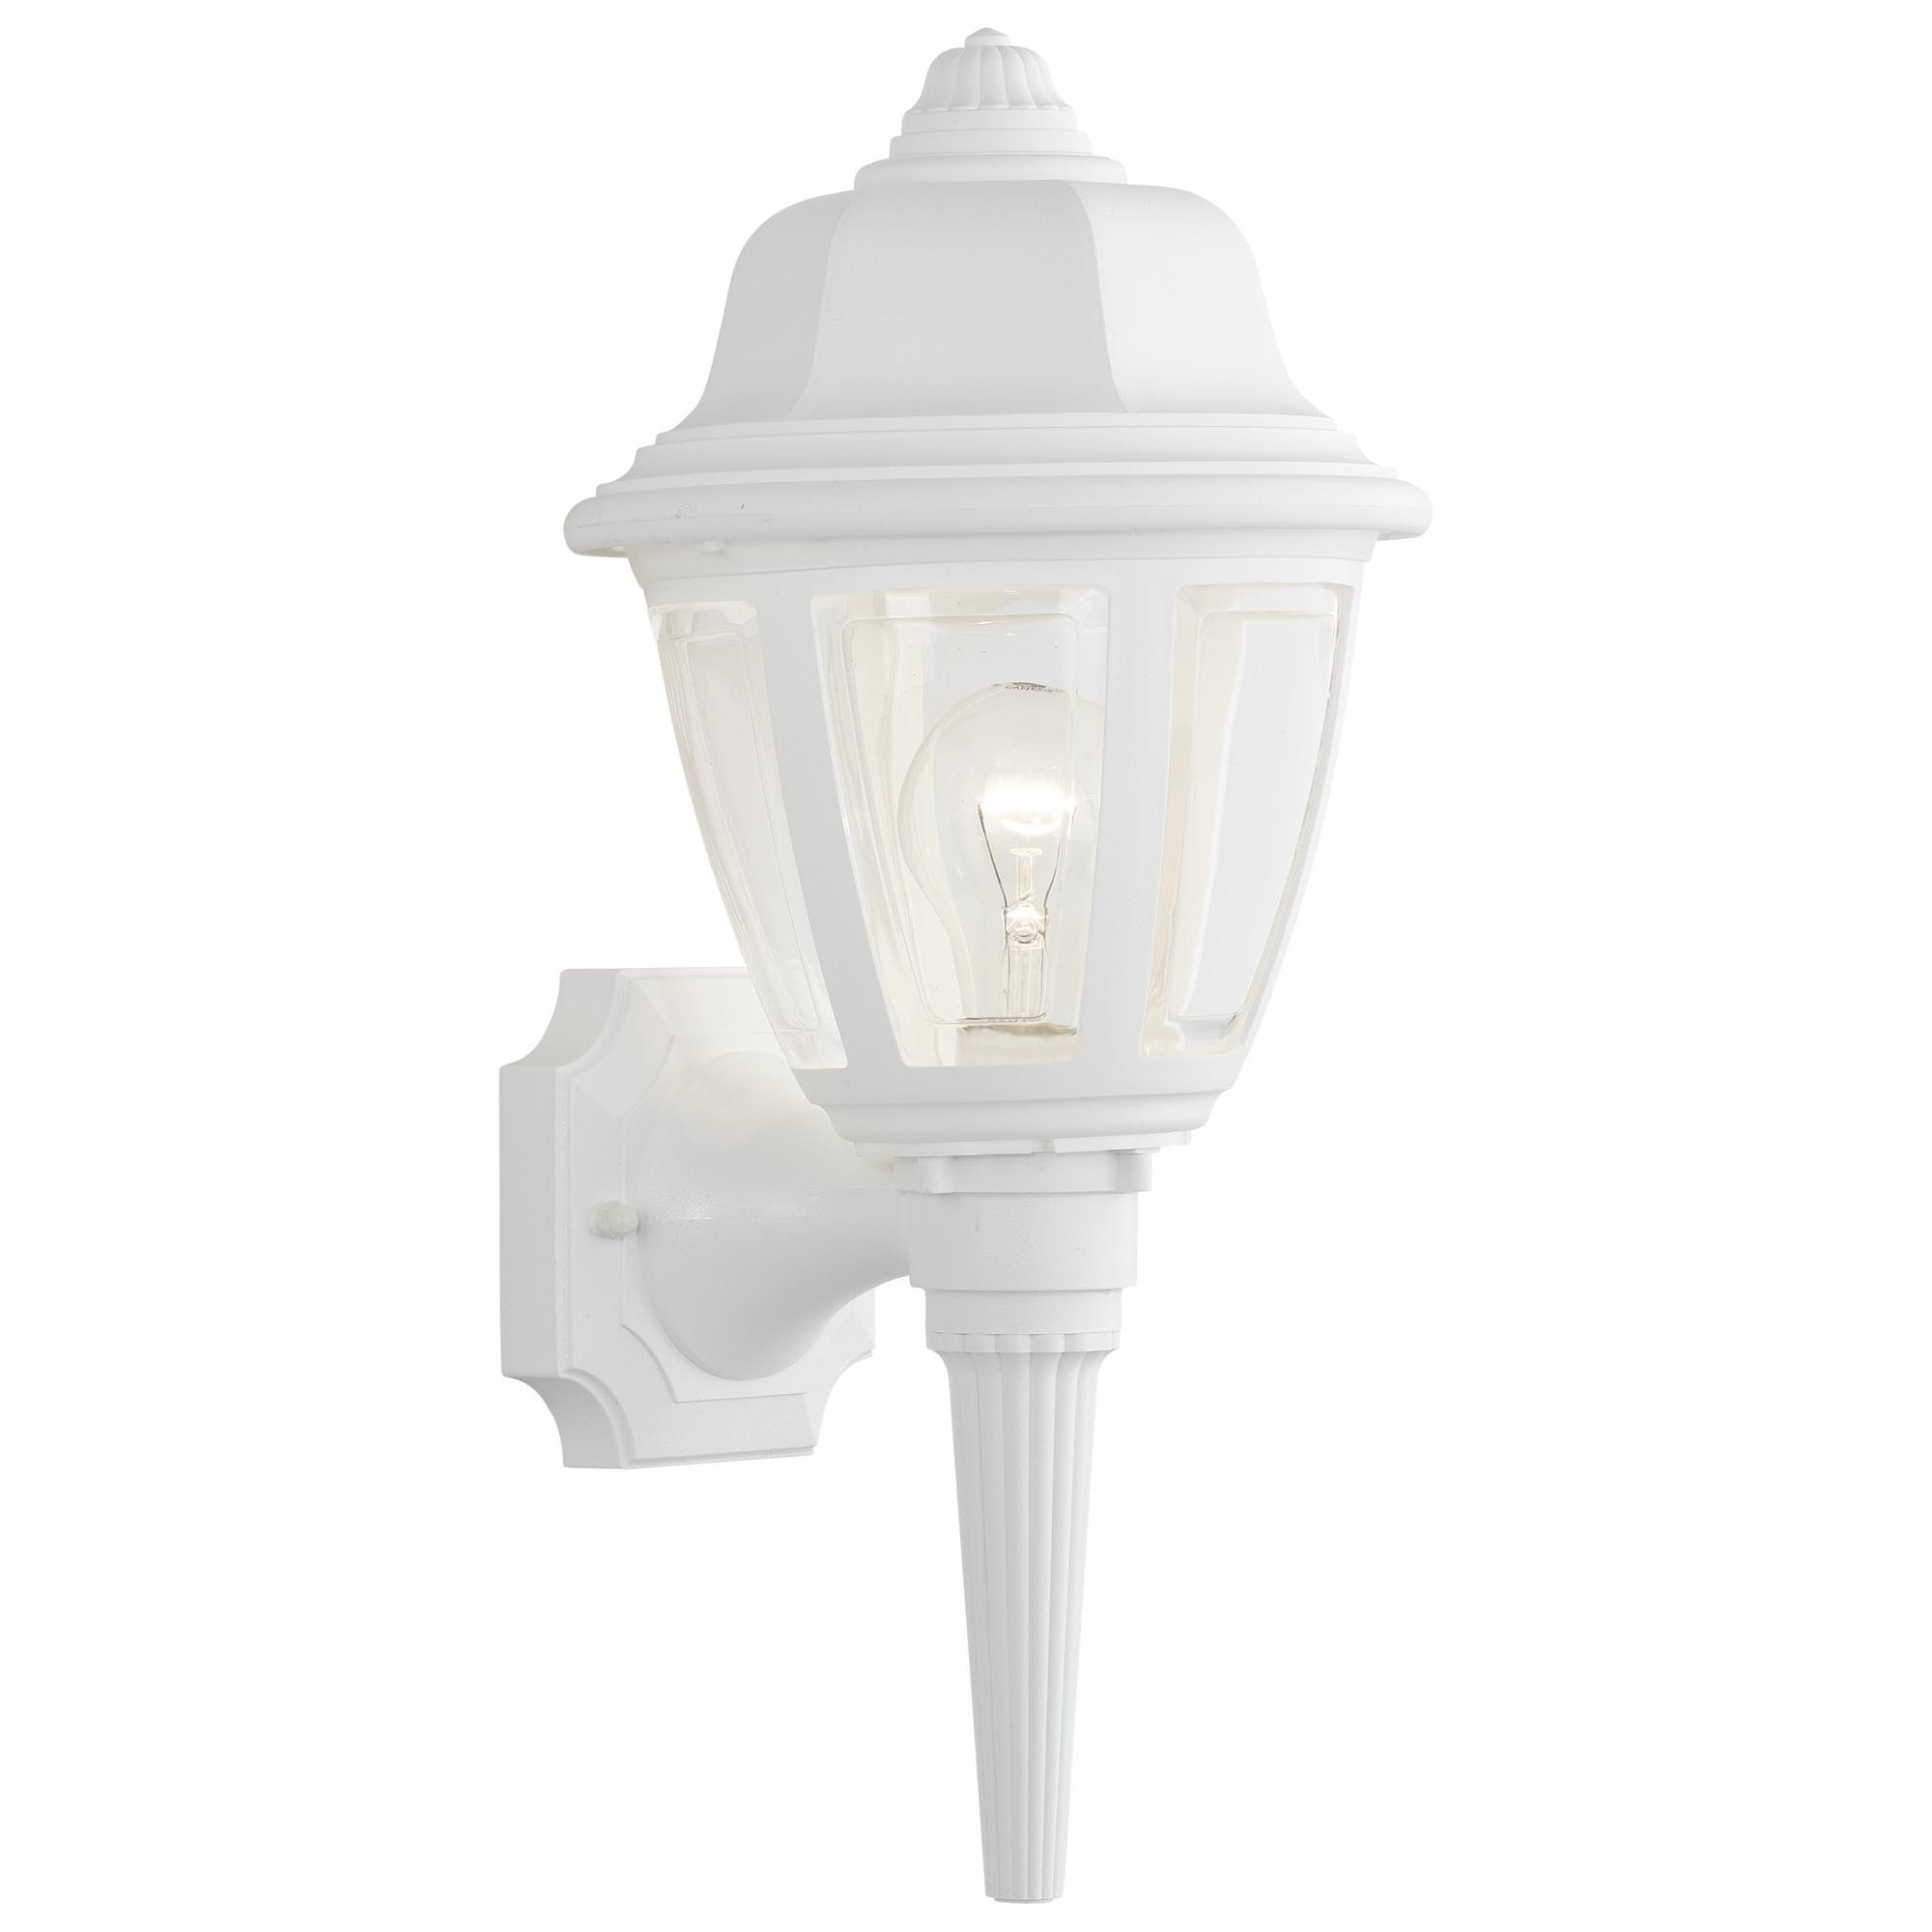 White Plastic Outdoor Light Fixtures – Outdoor Designs Throughout Plastic Outdoor Ceiling Lights (#14 of 15)